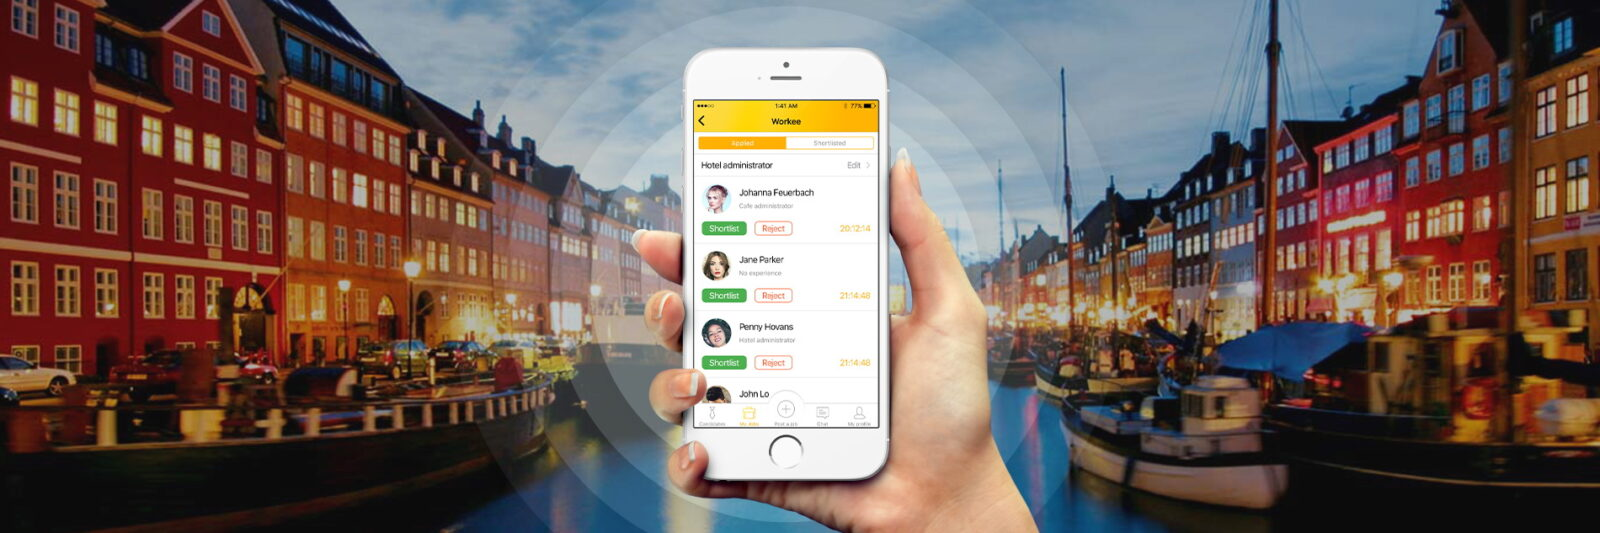 Workee Provides the Ability to Hire Hotel & Restaurant Staff in Hours